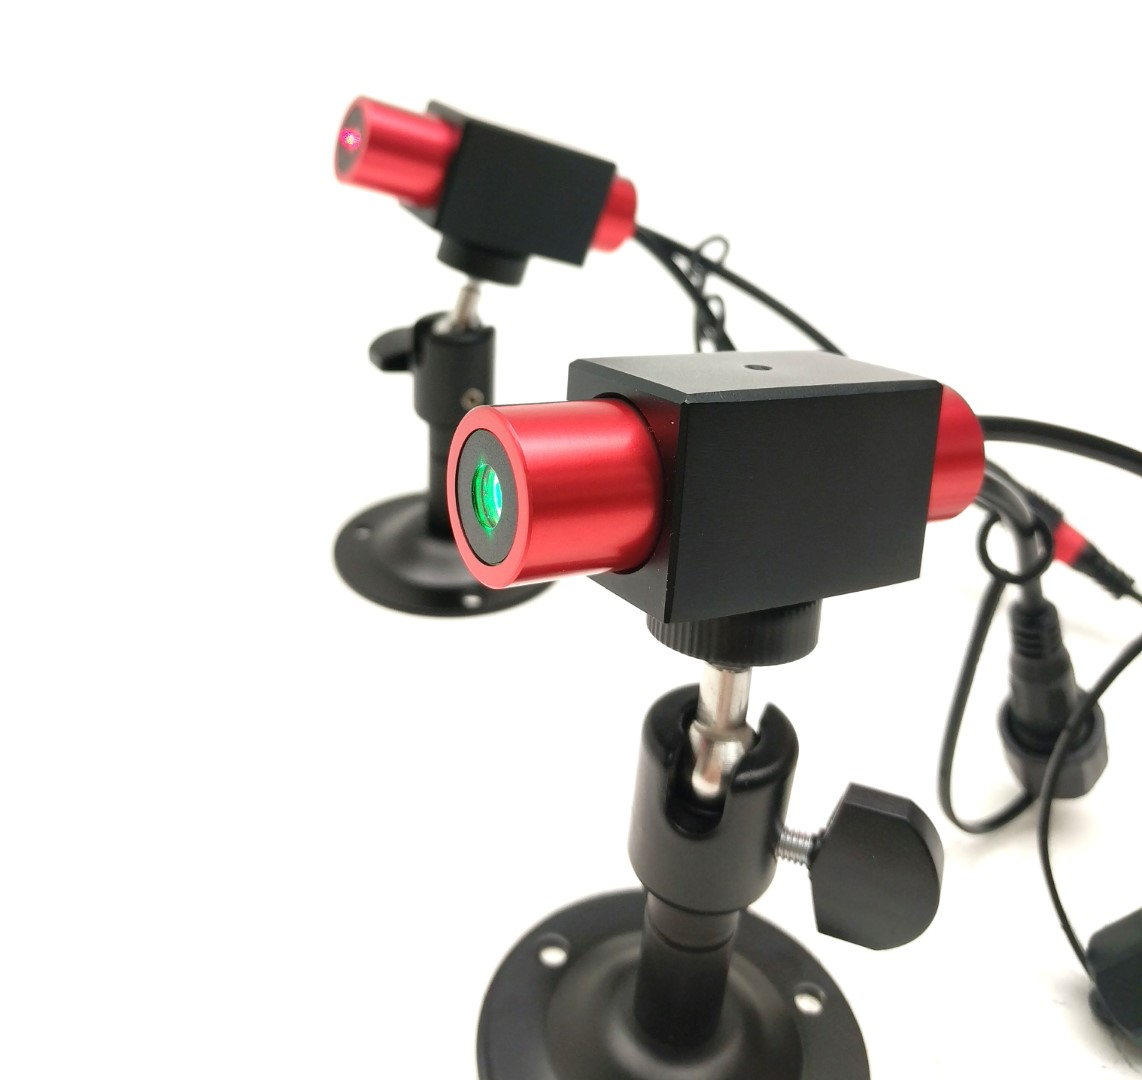 5 mW 635 nm Red Premium Structured Cross Laser, 71° fan angle, adjustable focus, TTL+, Sealed IP67